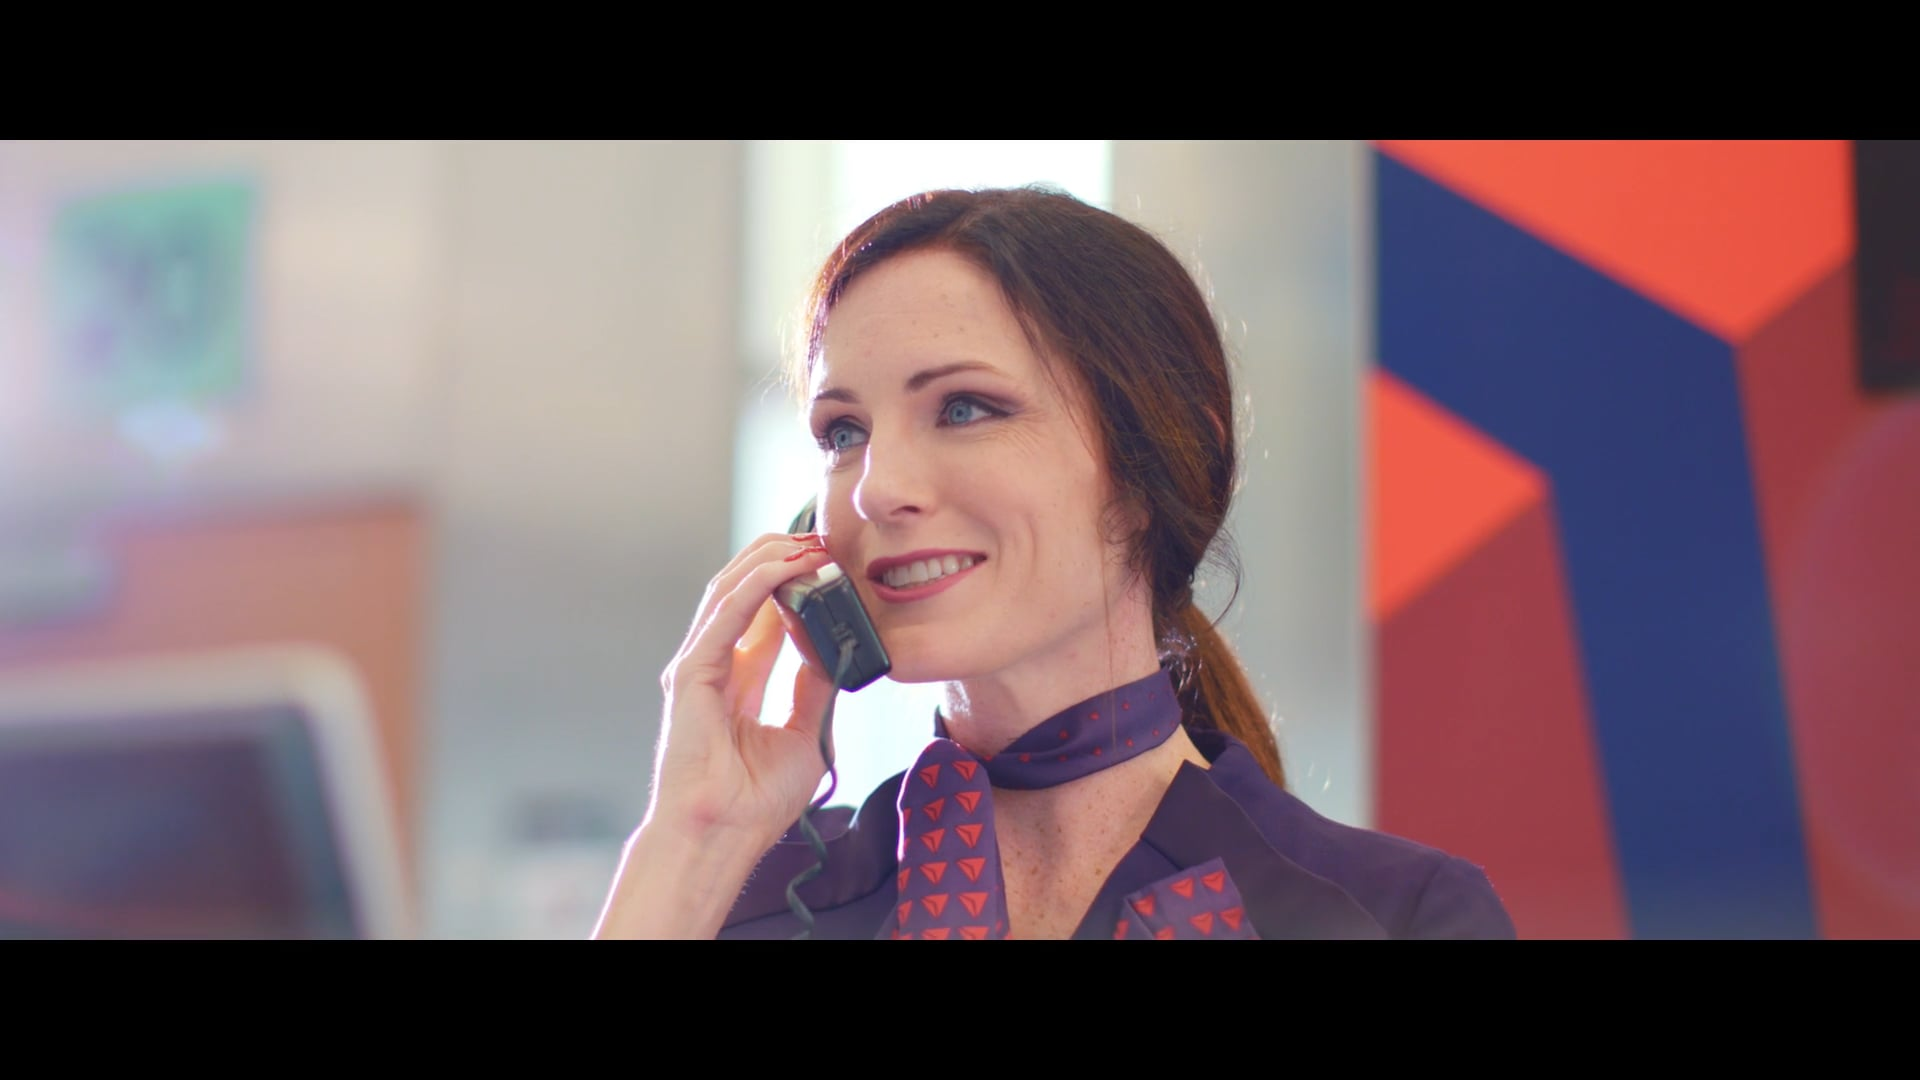 Delta Air Lines - Leading With Empathy